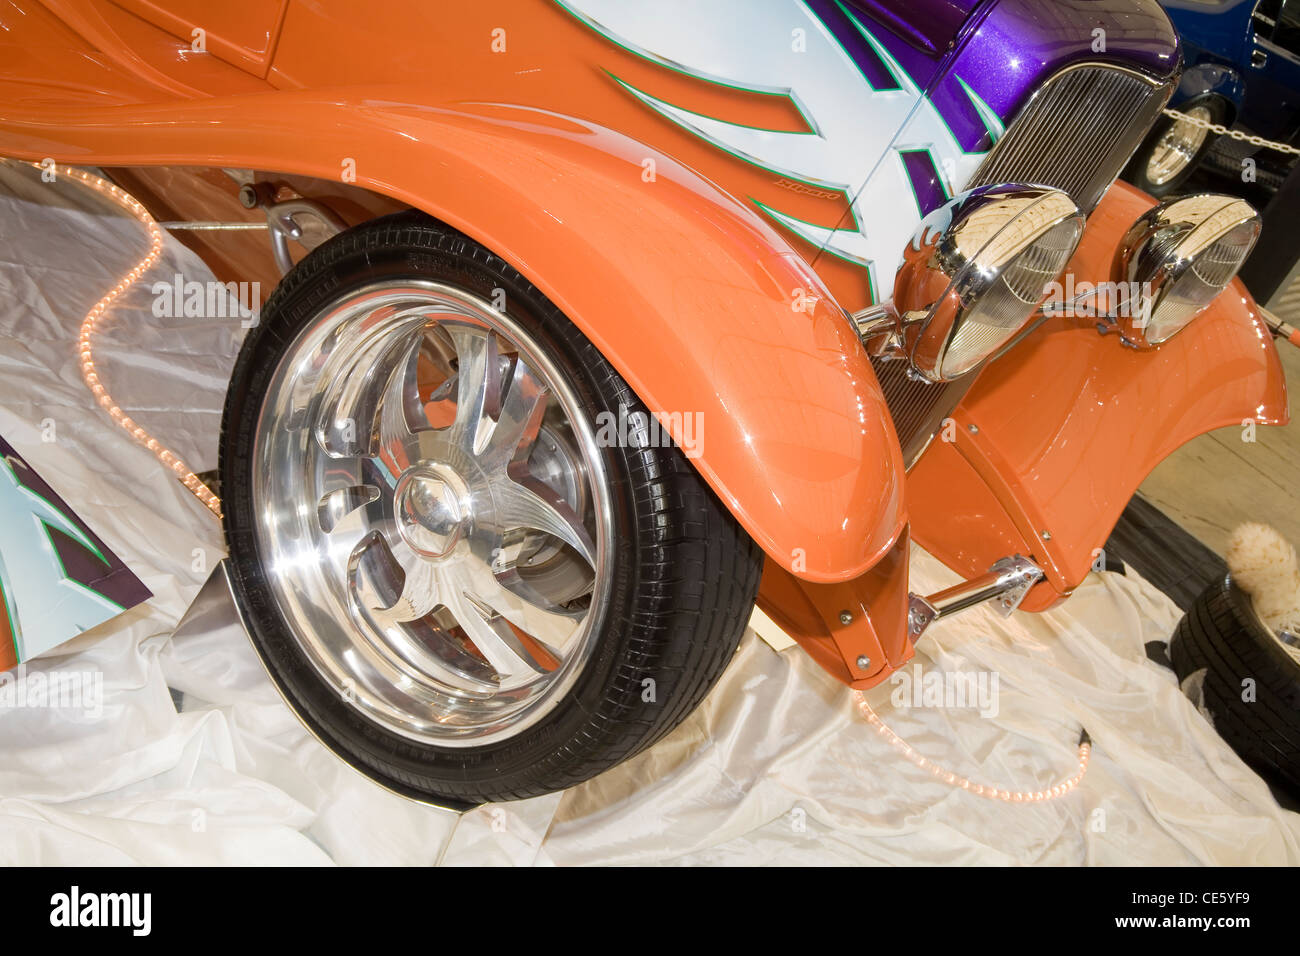 Shiny polished alloy billet hotrod wheel on a show vehicle at a hot rod show and display - Stock Image